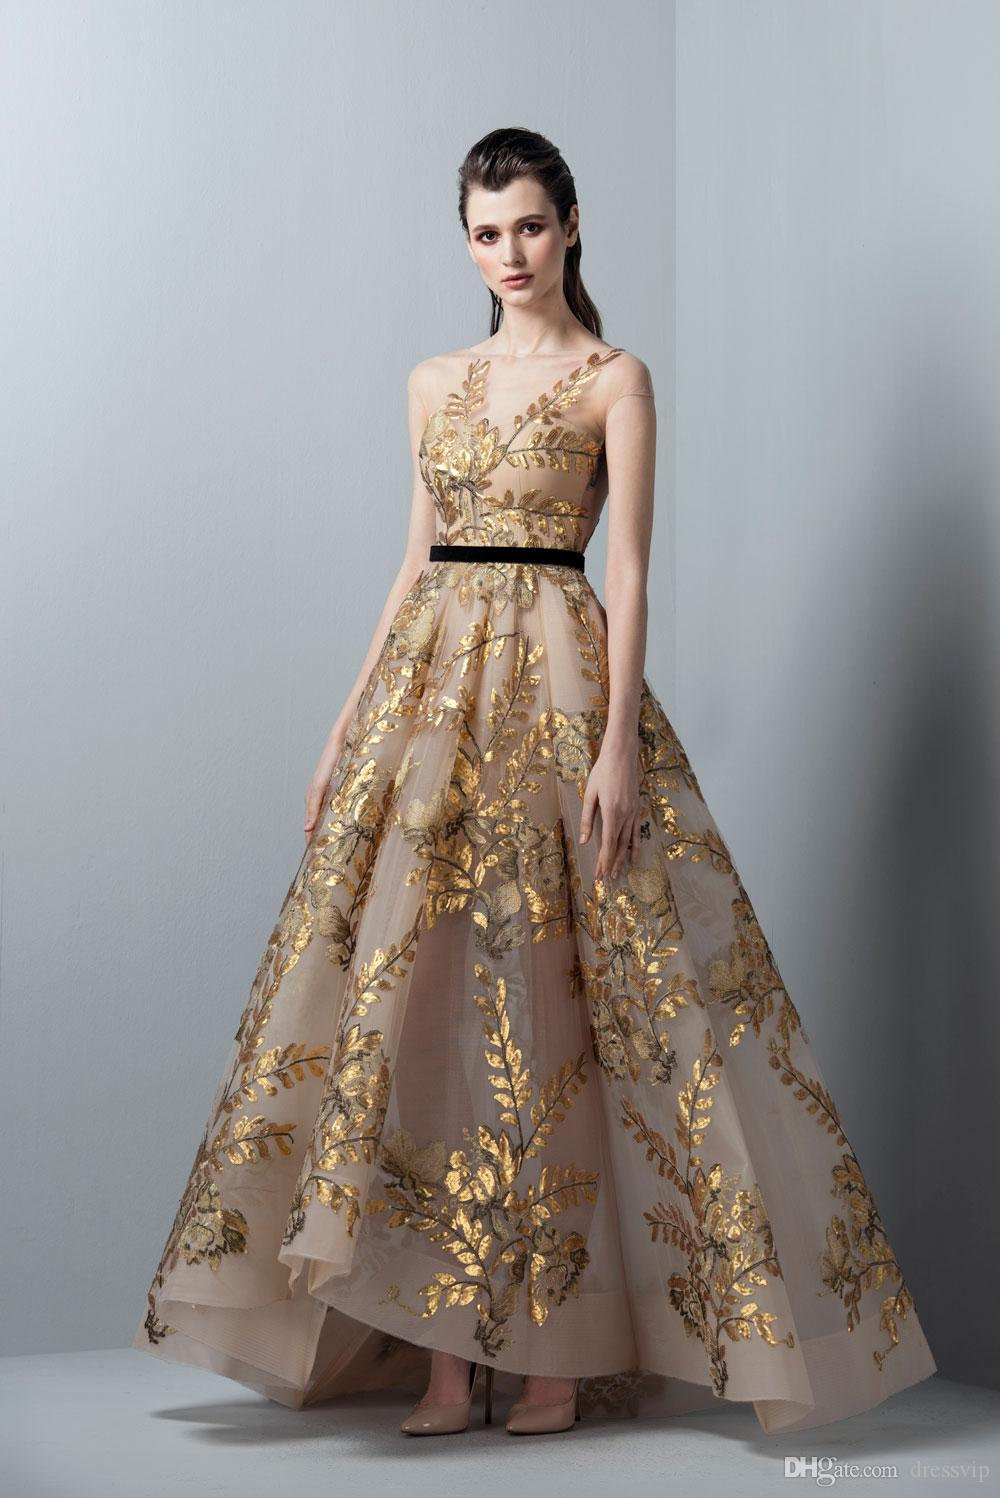 Saiid Kobeisy Prom Dresses Gold Short Sleeve Sheer Bateau Neck Floor